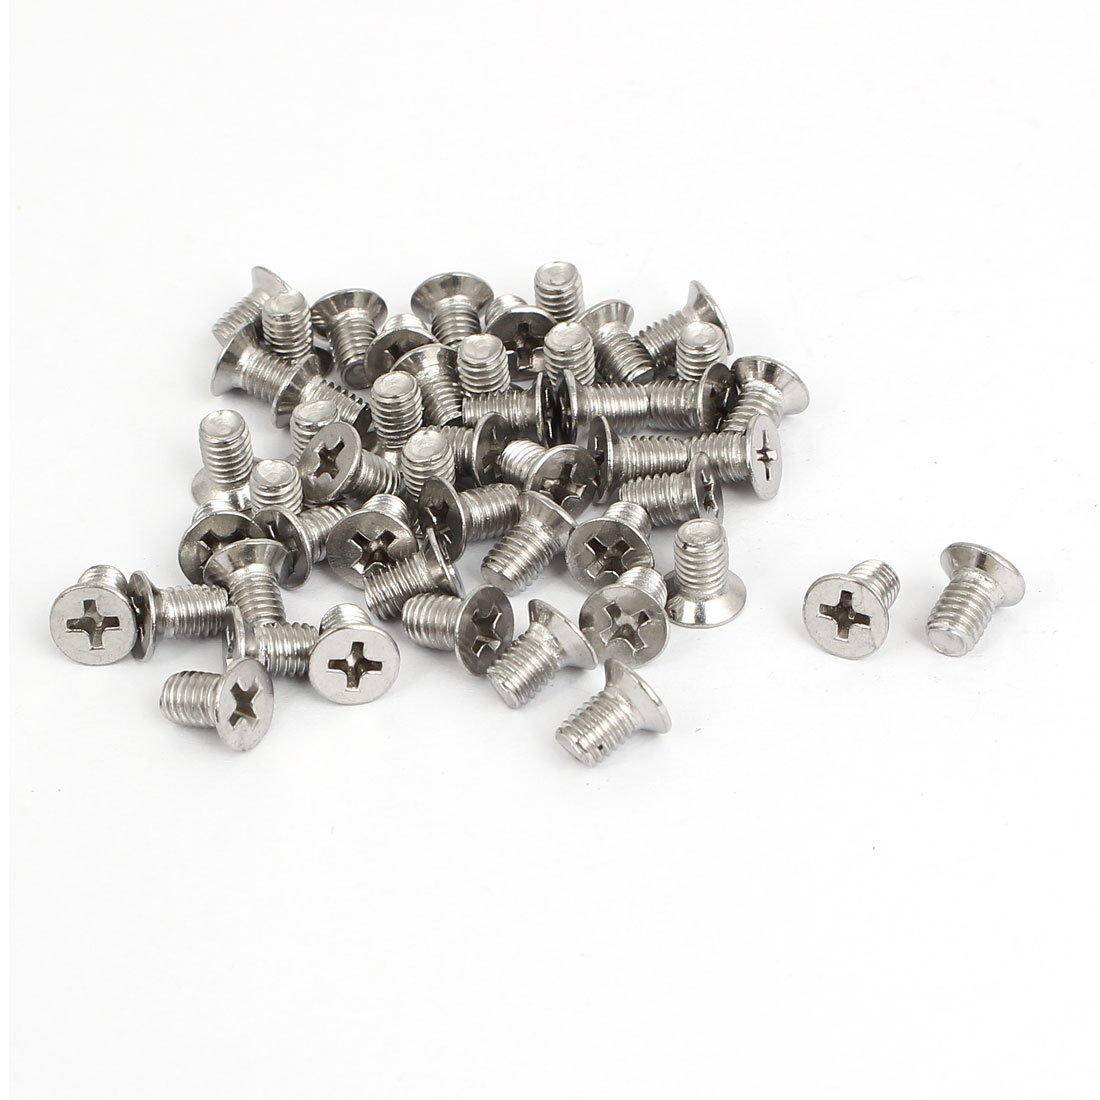 M5x8mm Stainless Steel Countersunk Flat Head Cross Phillips Screw Bolts 50pcs